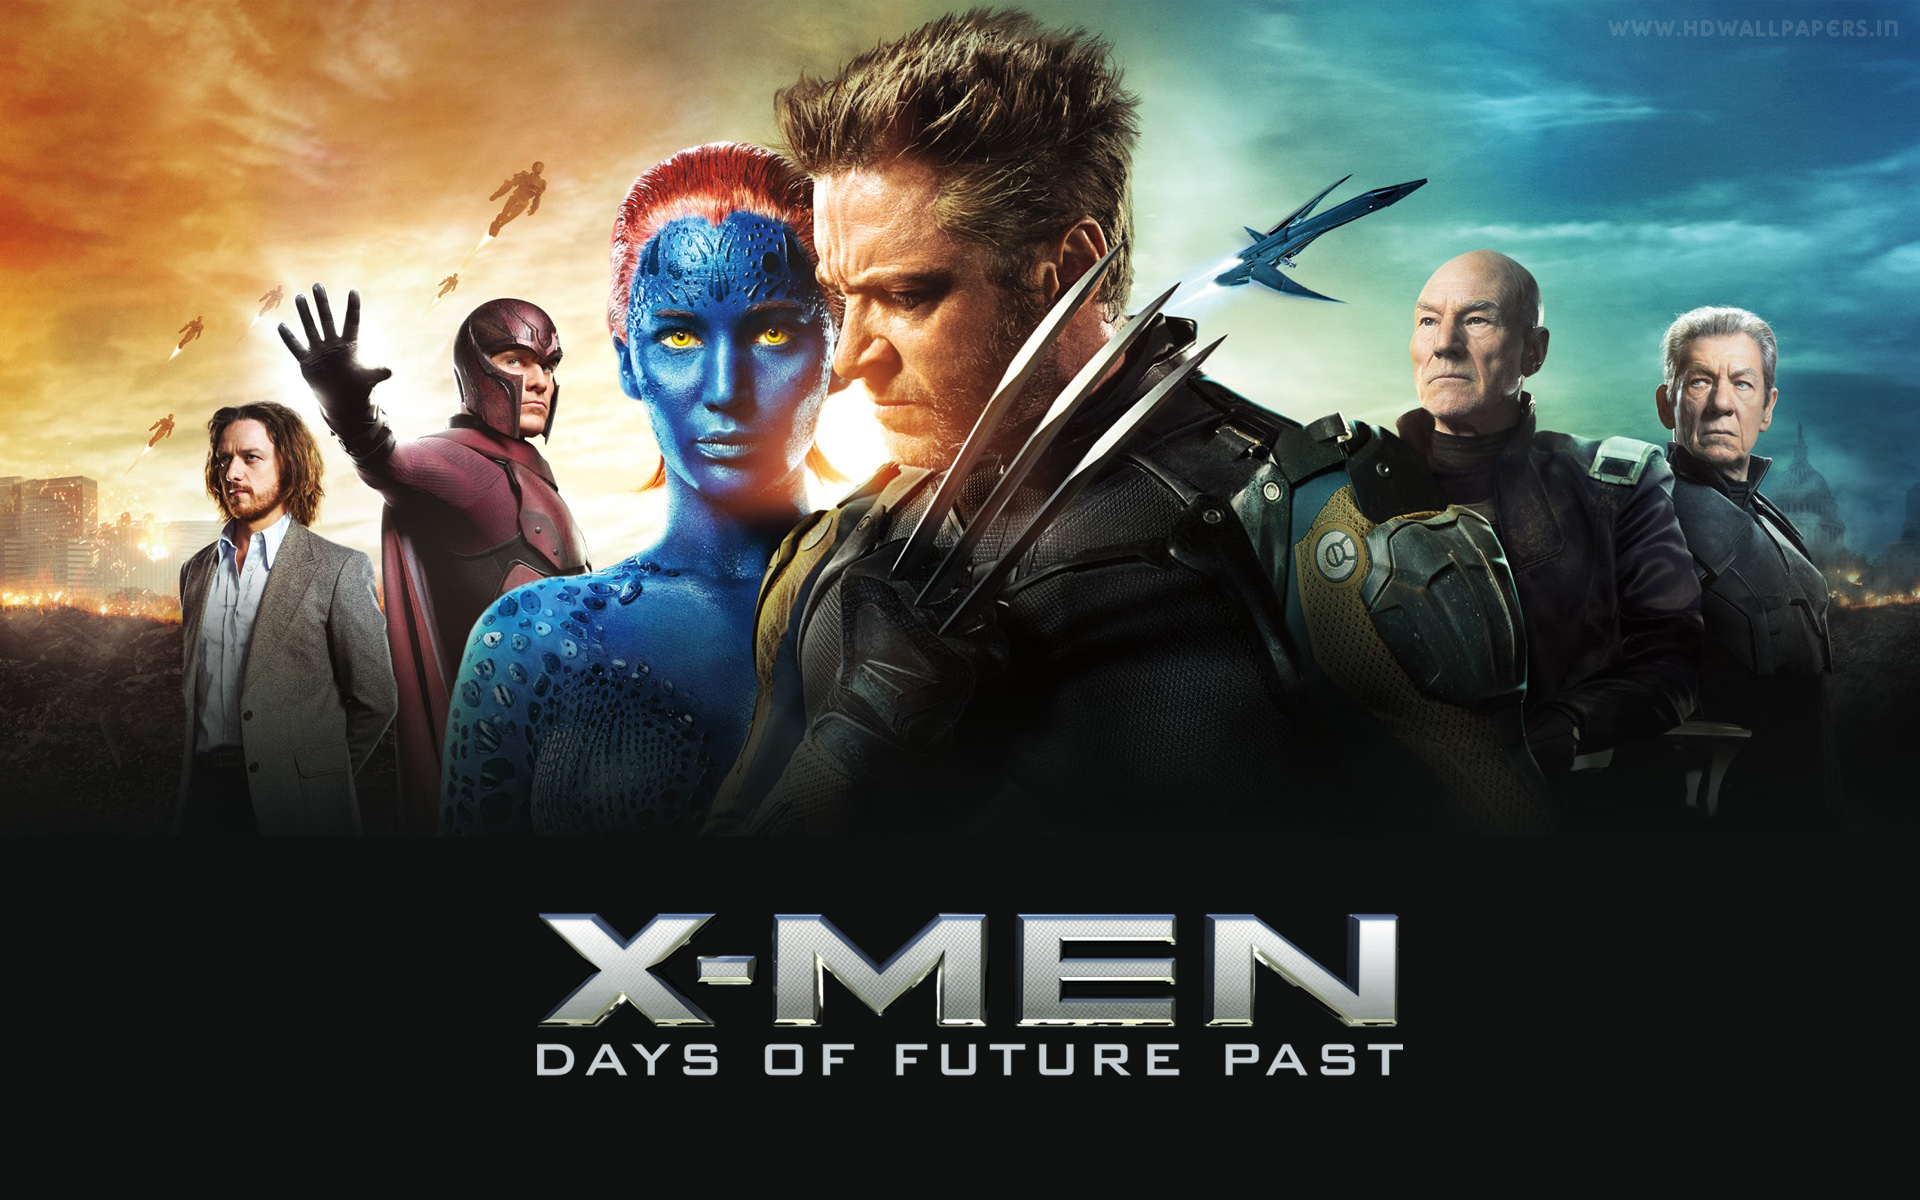 """SciFiNow has posted an interview with """"X-Men: Days of Future Past"""" director Bryan Singer, who states it's """"not healthy"""" for people to compare Fox's X-Men ..."""